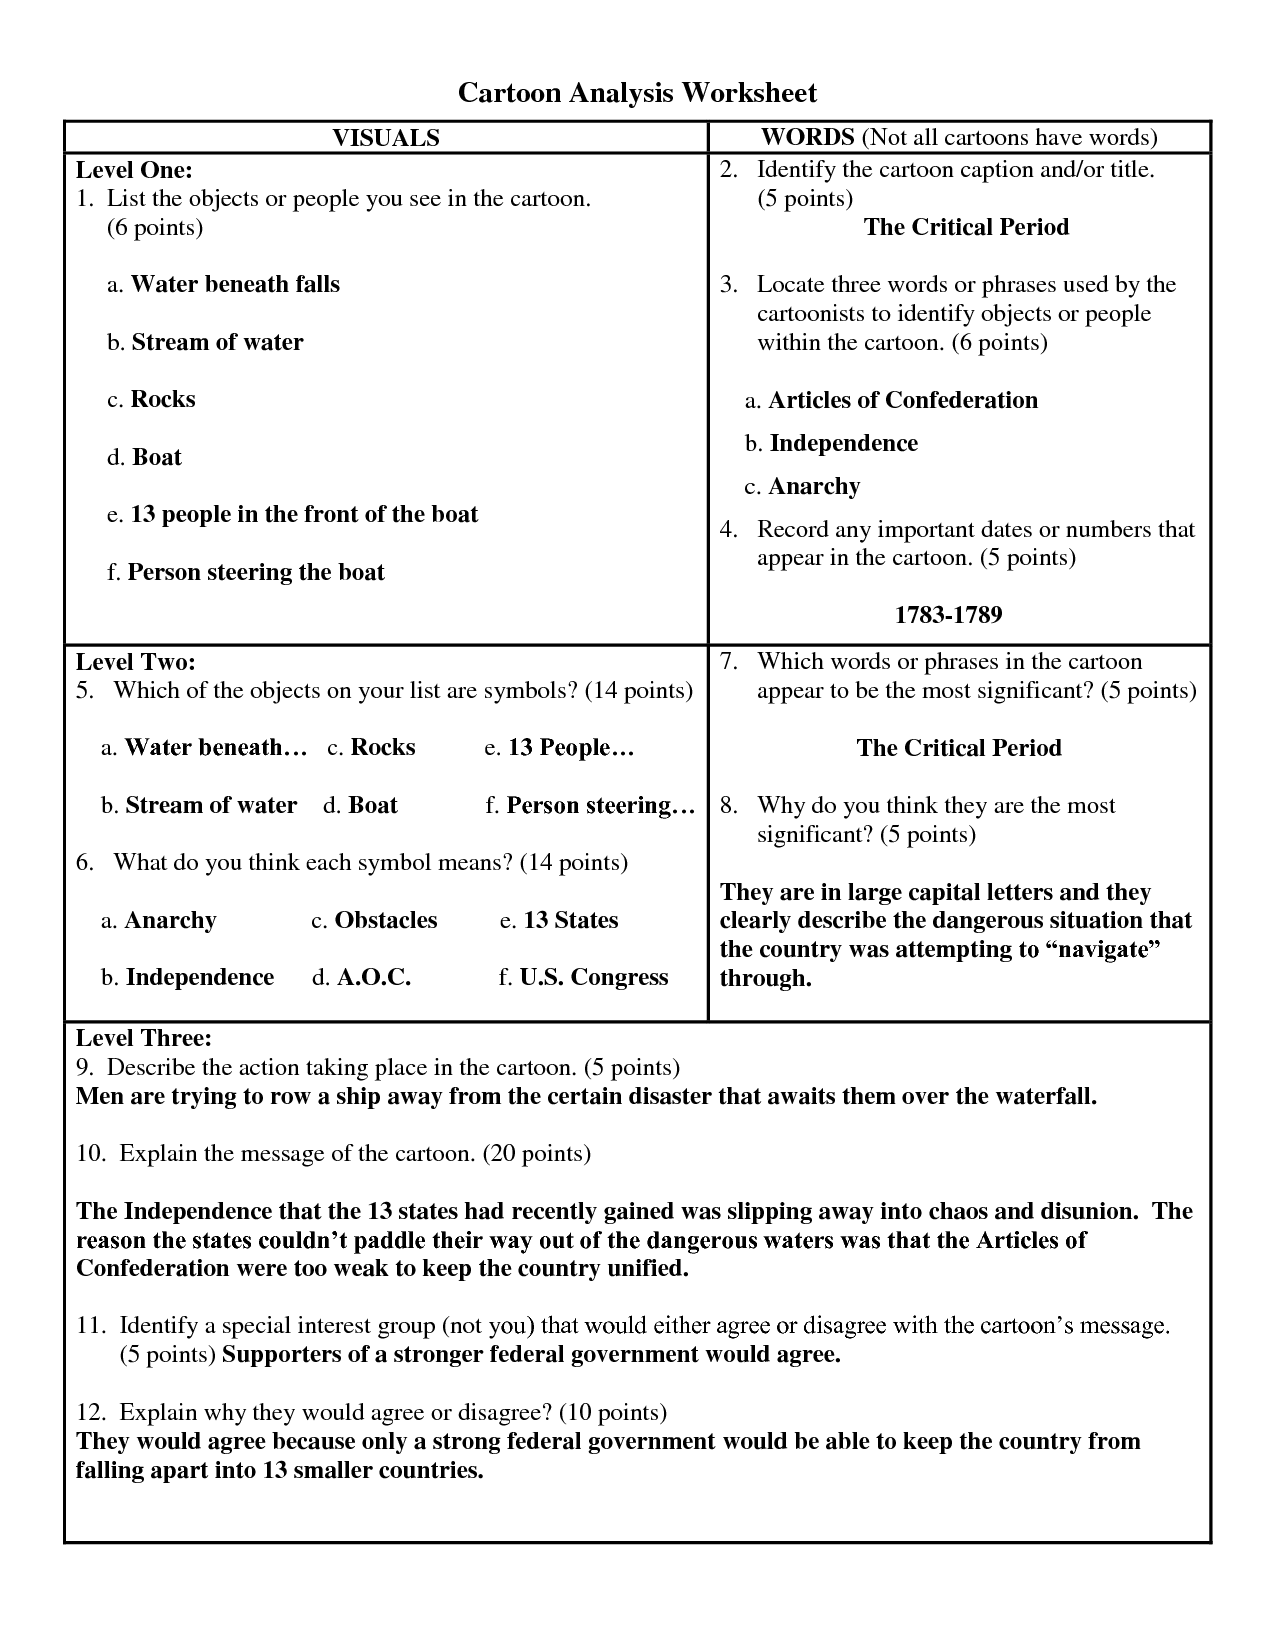 Political Cartoonysis Worksheet Answer Key